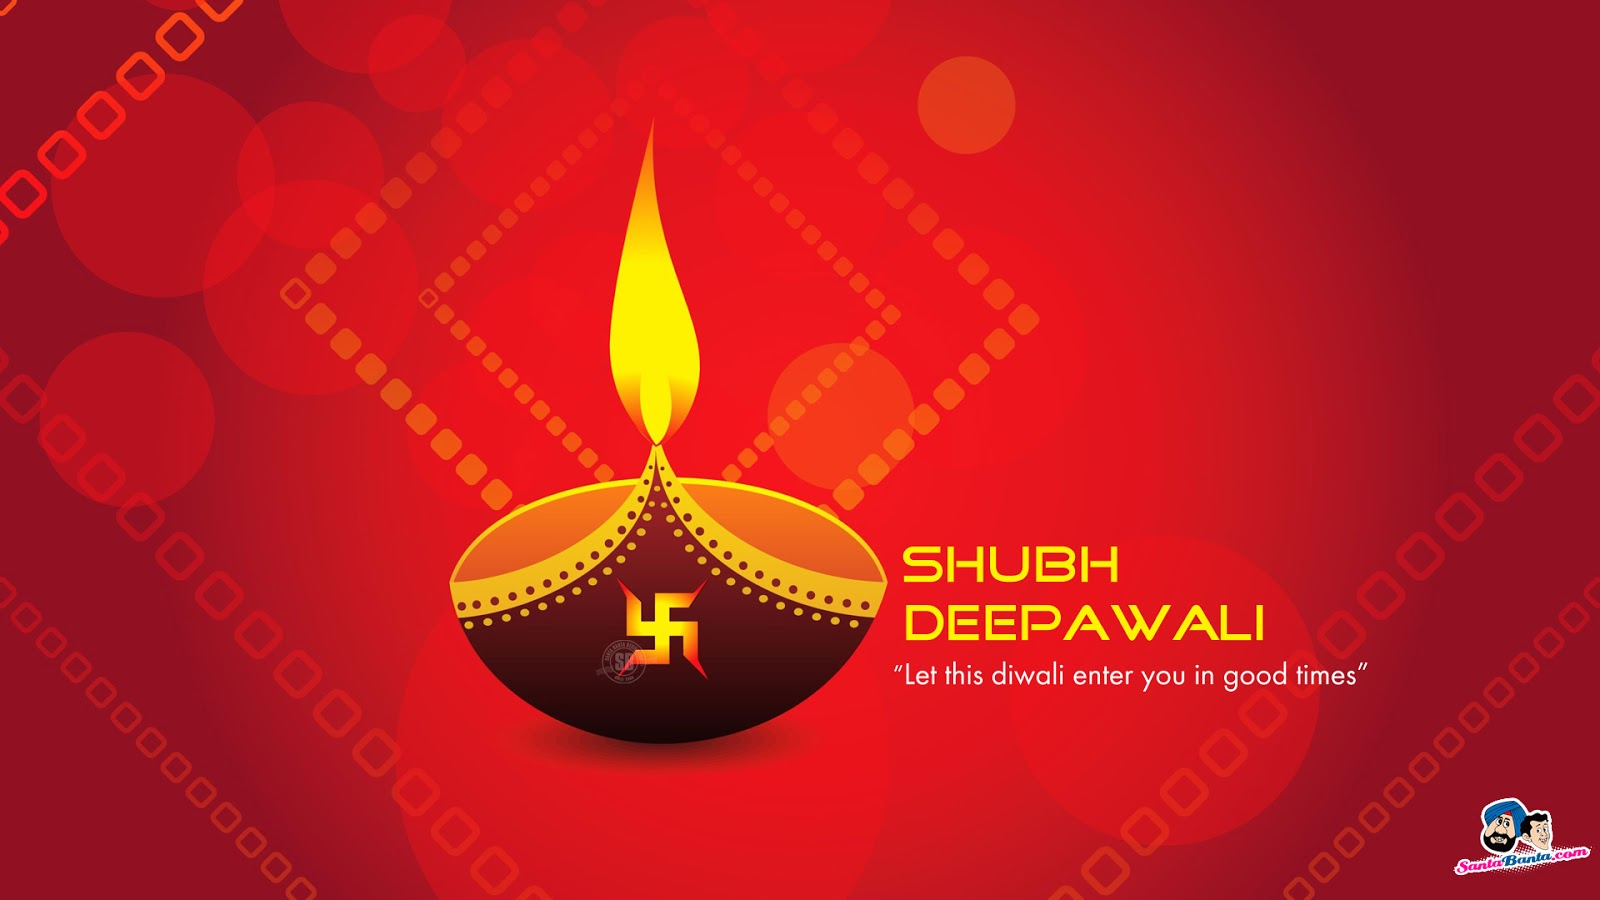 Shubh deepawali let this diwali enter you in good times m4hsunfo